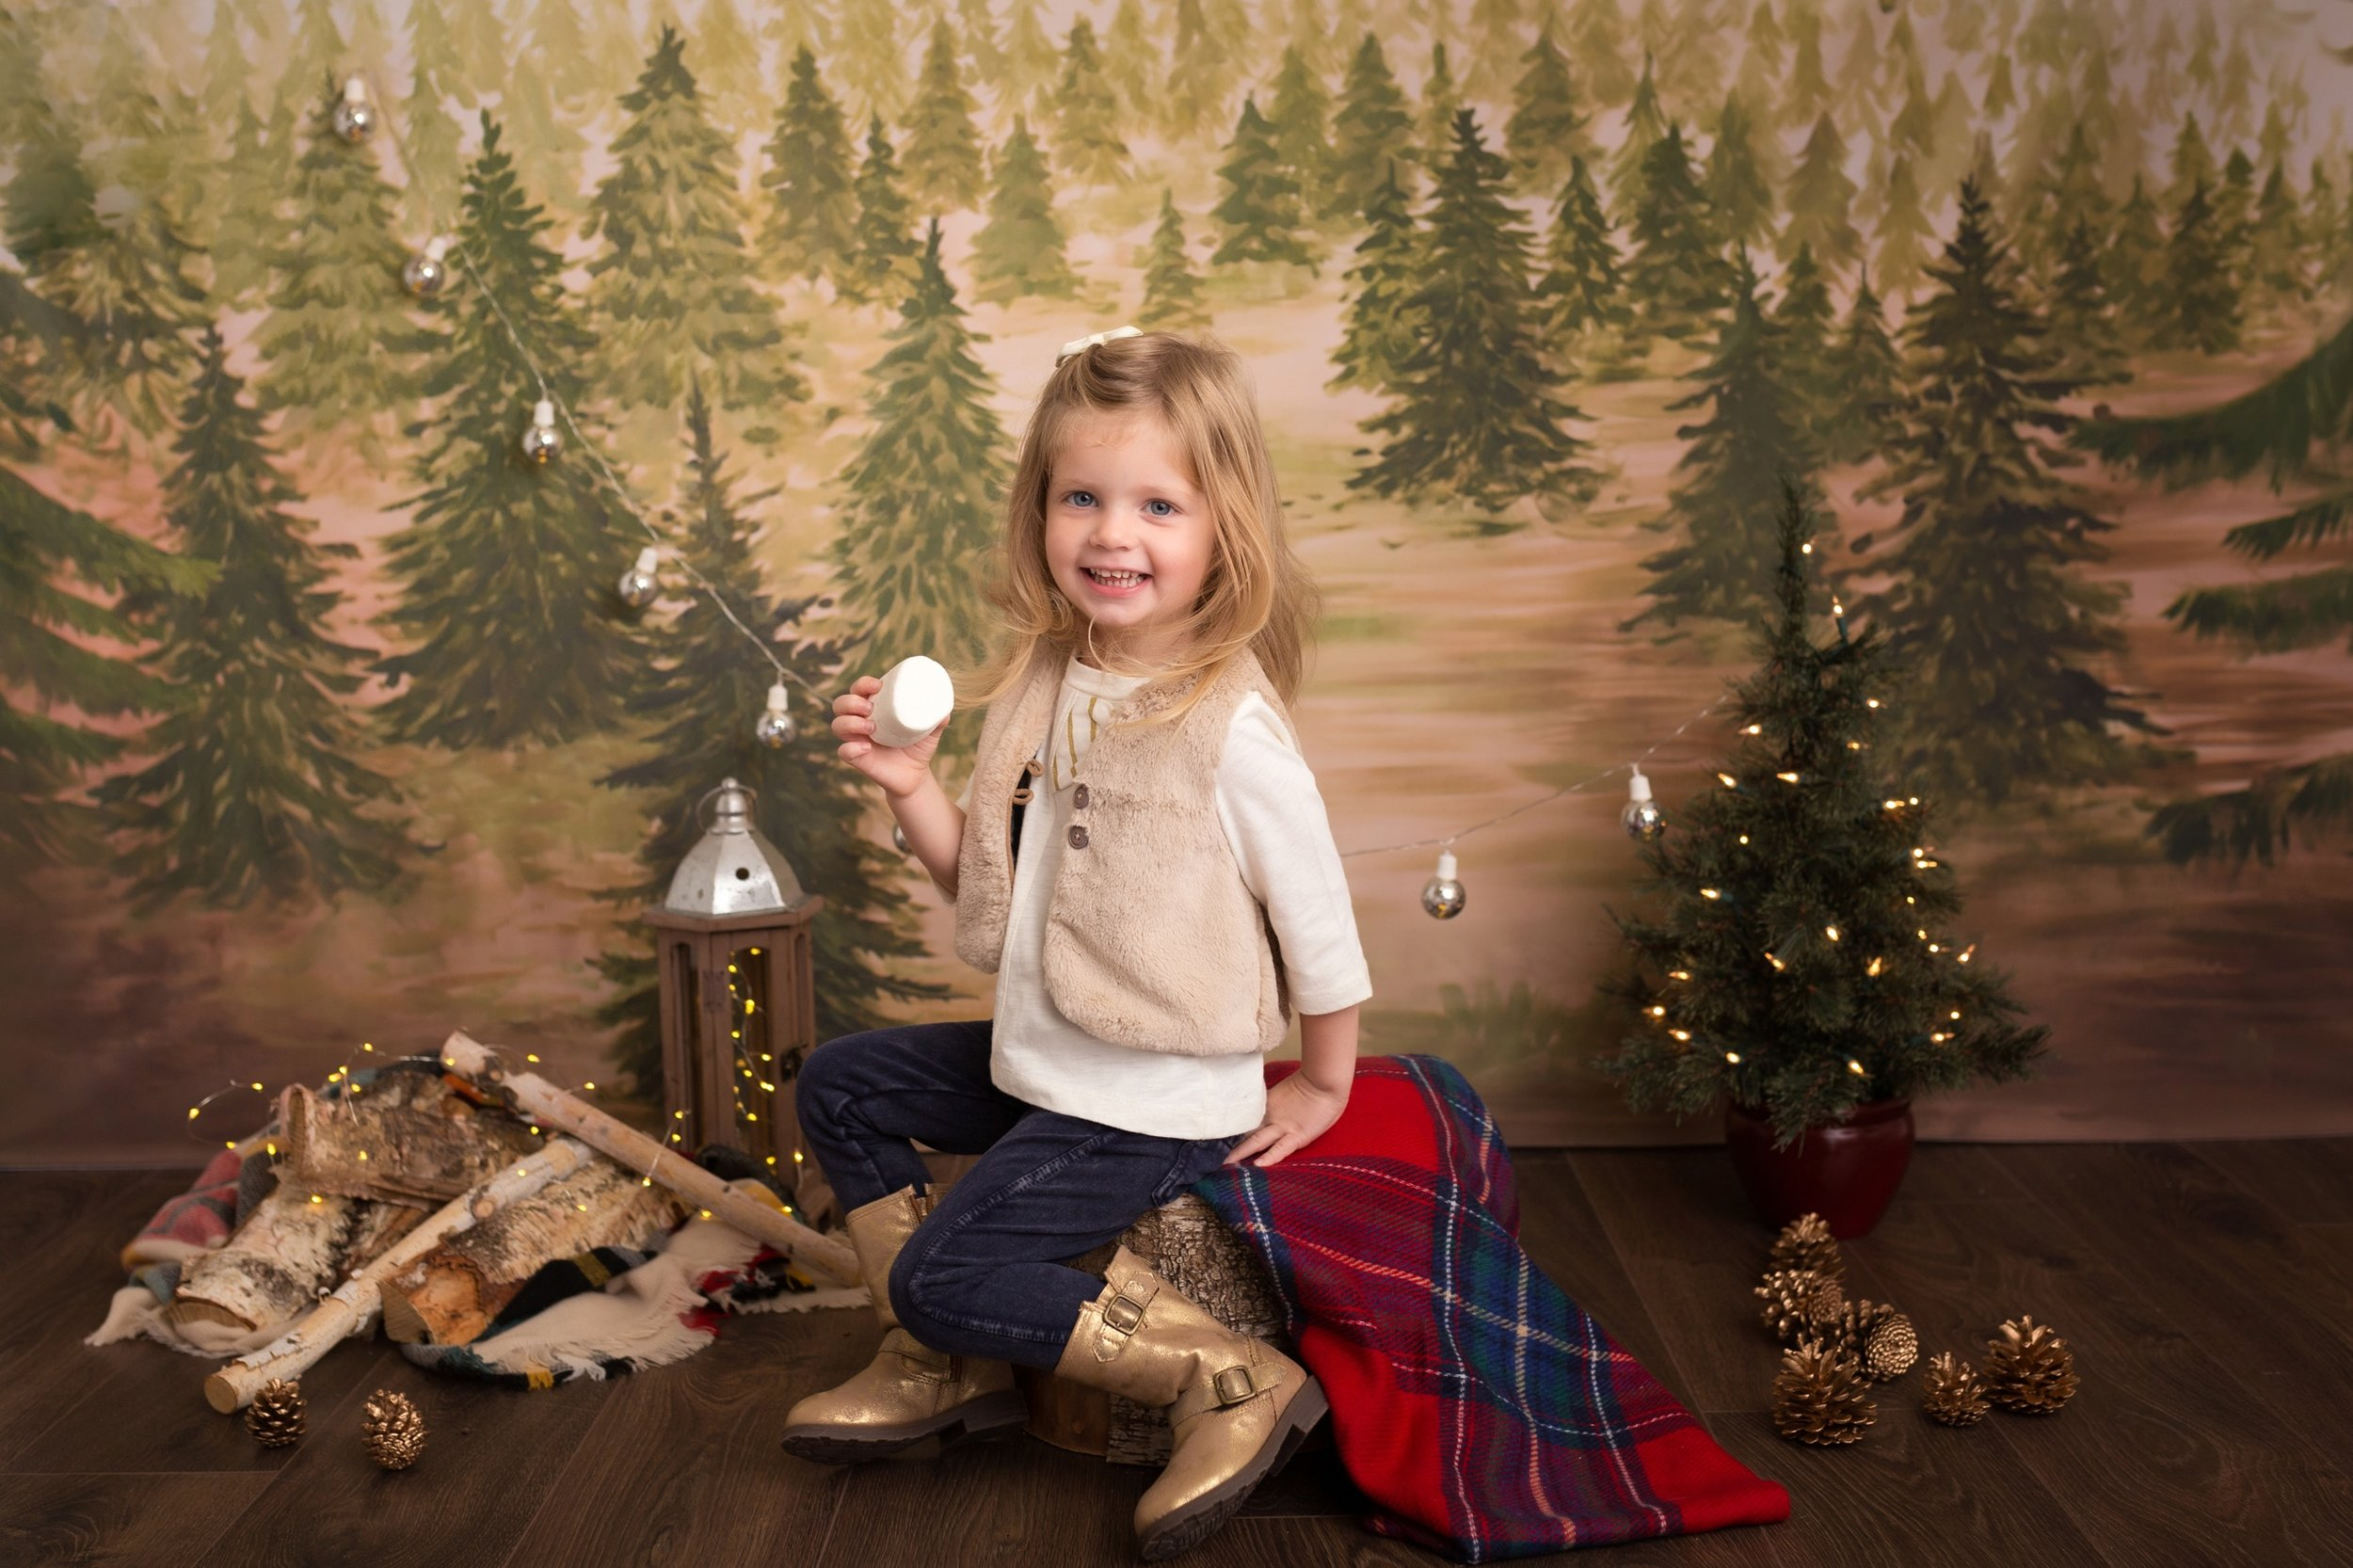 Rustic pine - Woodsy outdoor greenery for a festive Fall and Holiday look.